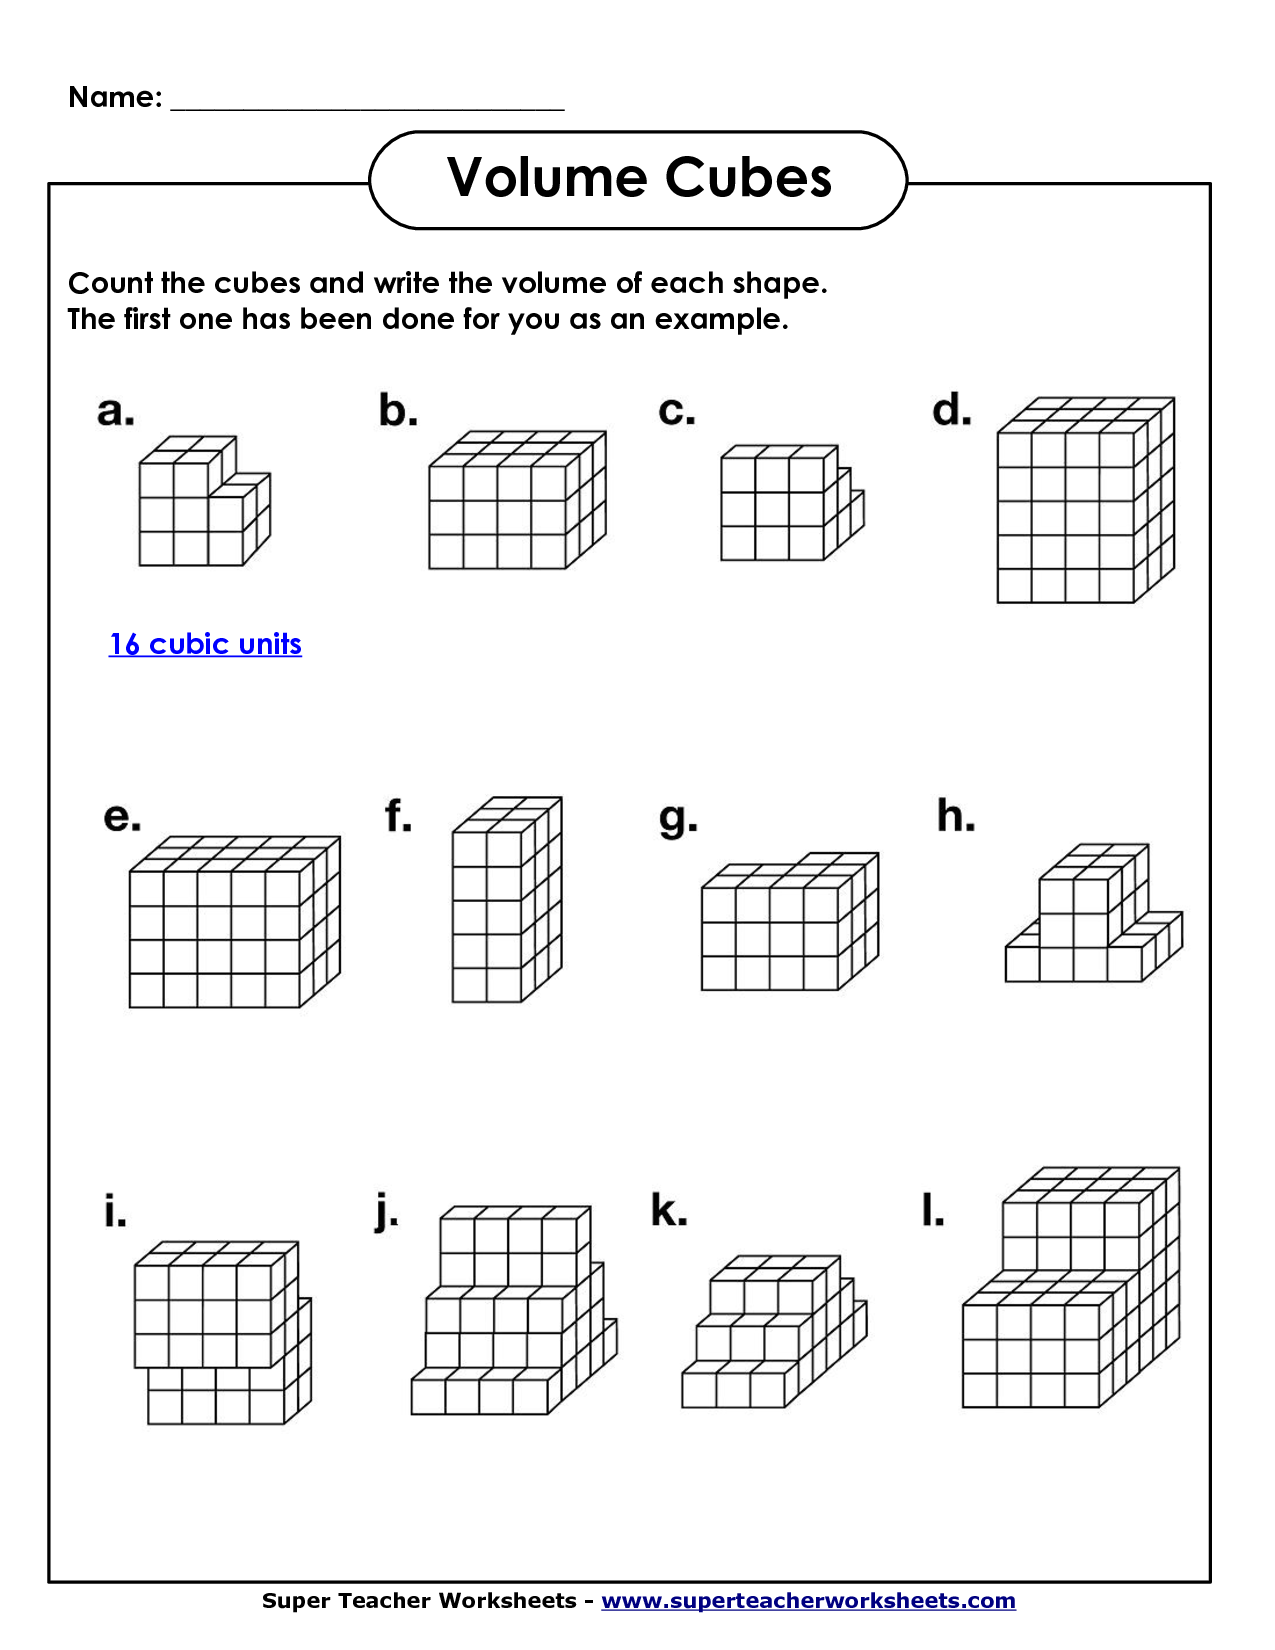 volume geometry with cubic units pdf math worksheets pinterest pdf math and school. Black Bedroom Furniture Sets. Home Design Ideas